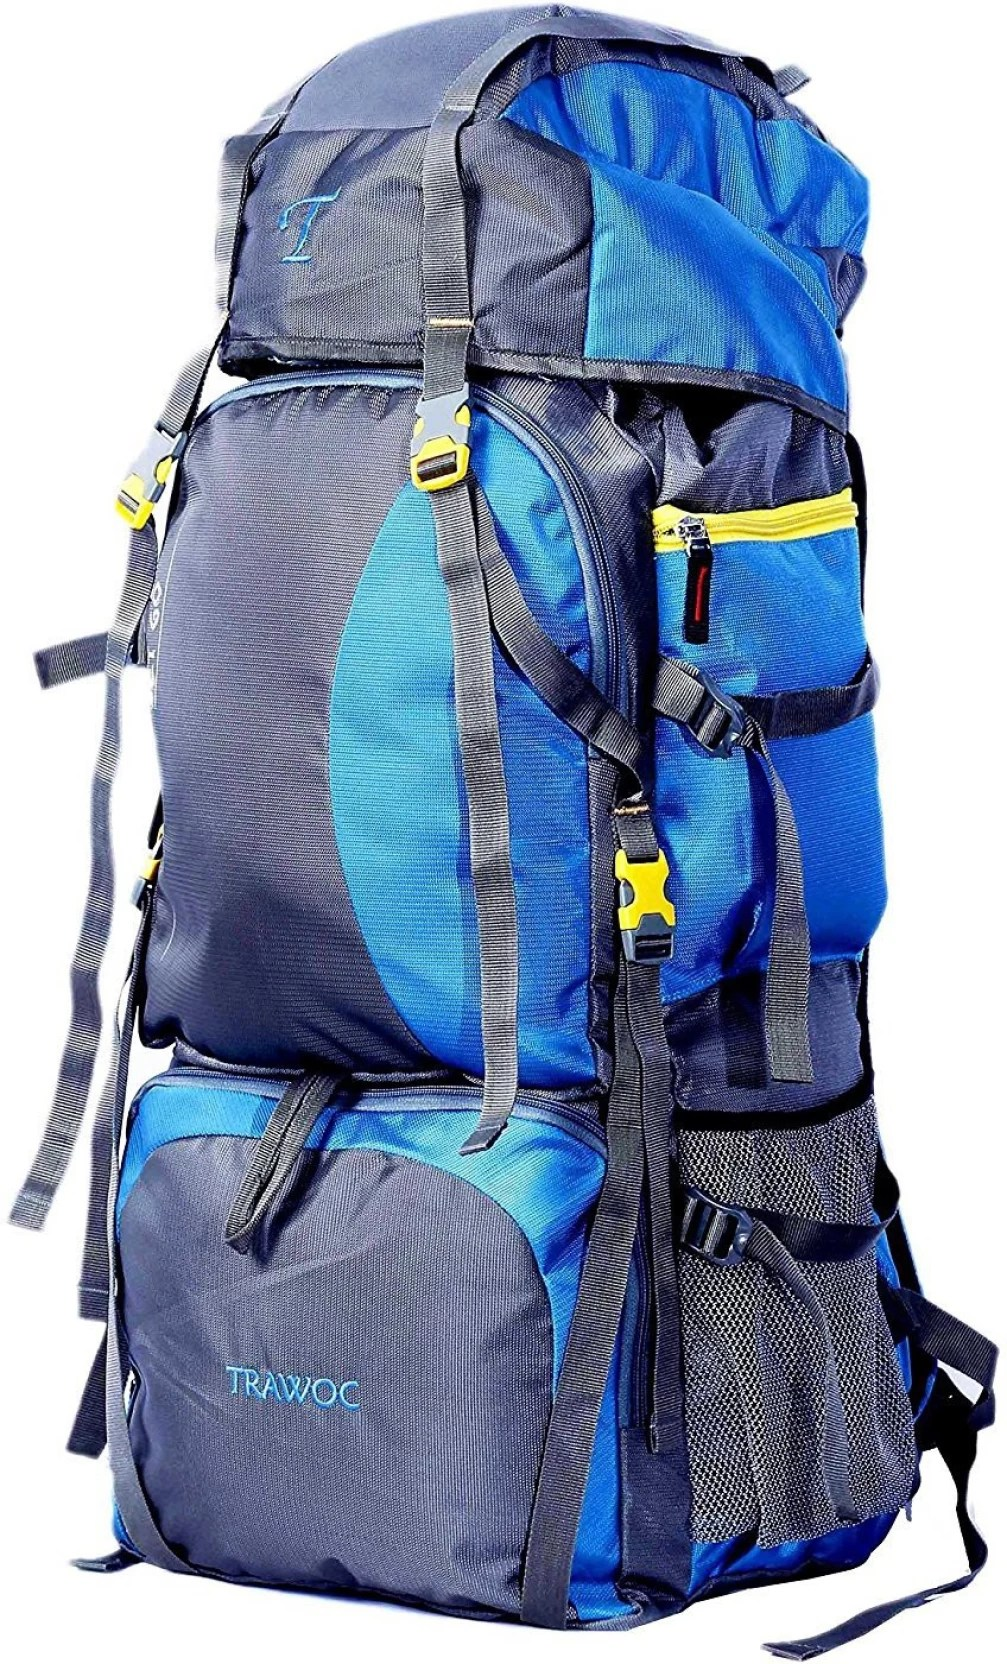 Travel Rucksack Trawoc Hk1 Sb Trekking Bag Hiking Backpack Travel Rucksack 60